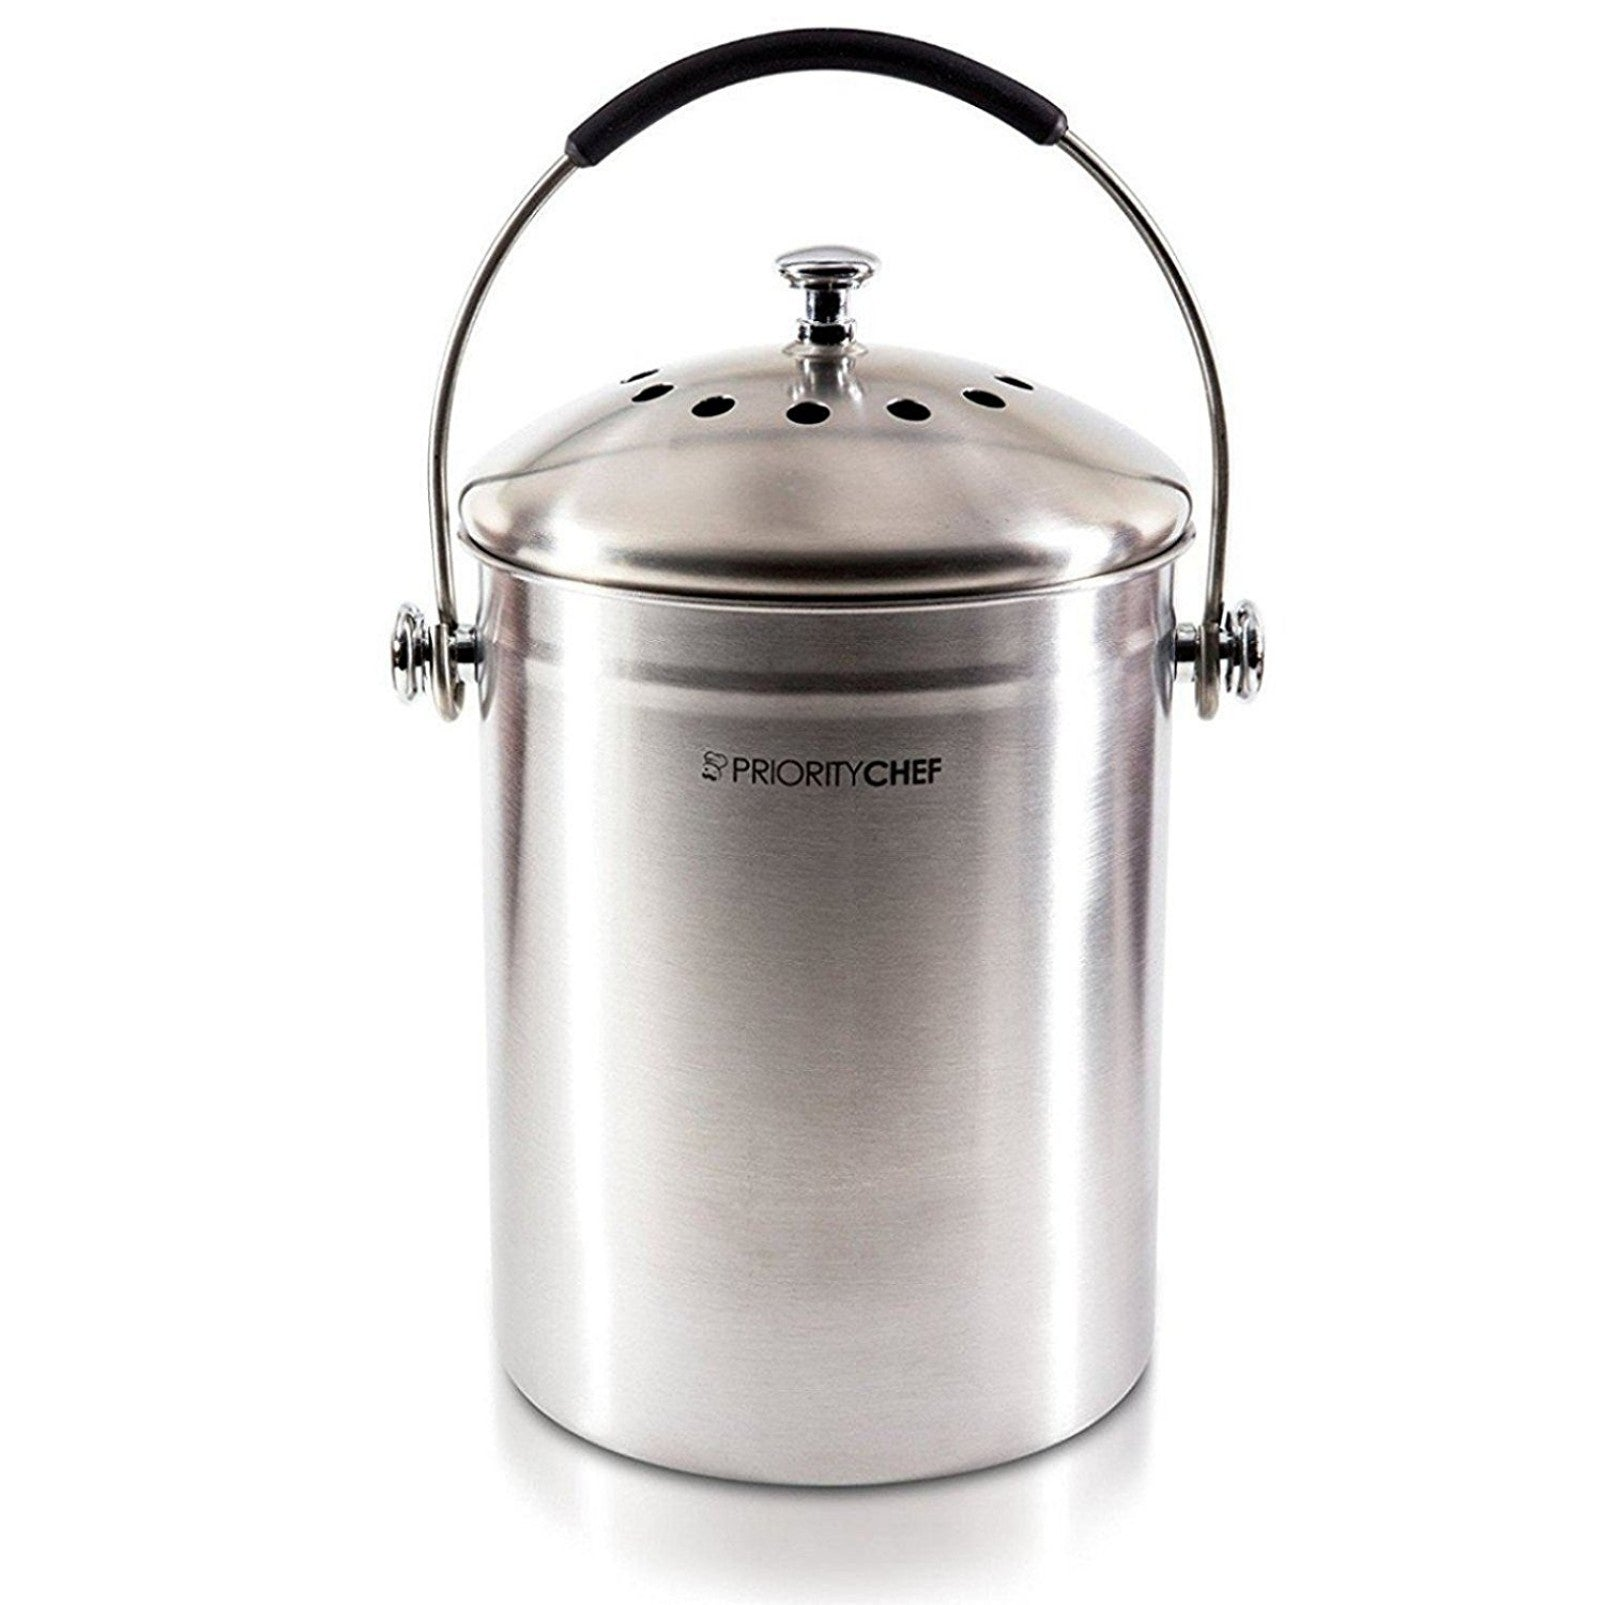 Compost Bin, Stainless Steel With Silicone Handles and Odor ...